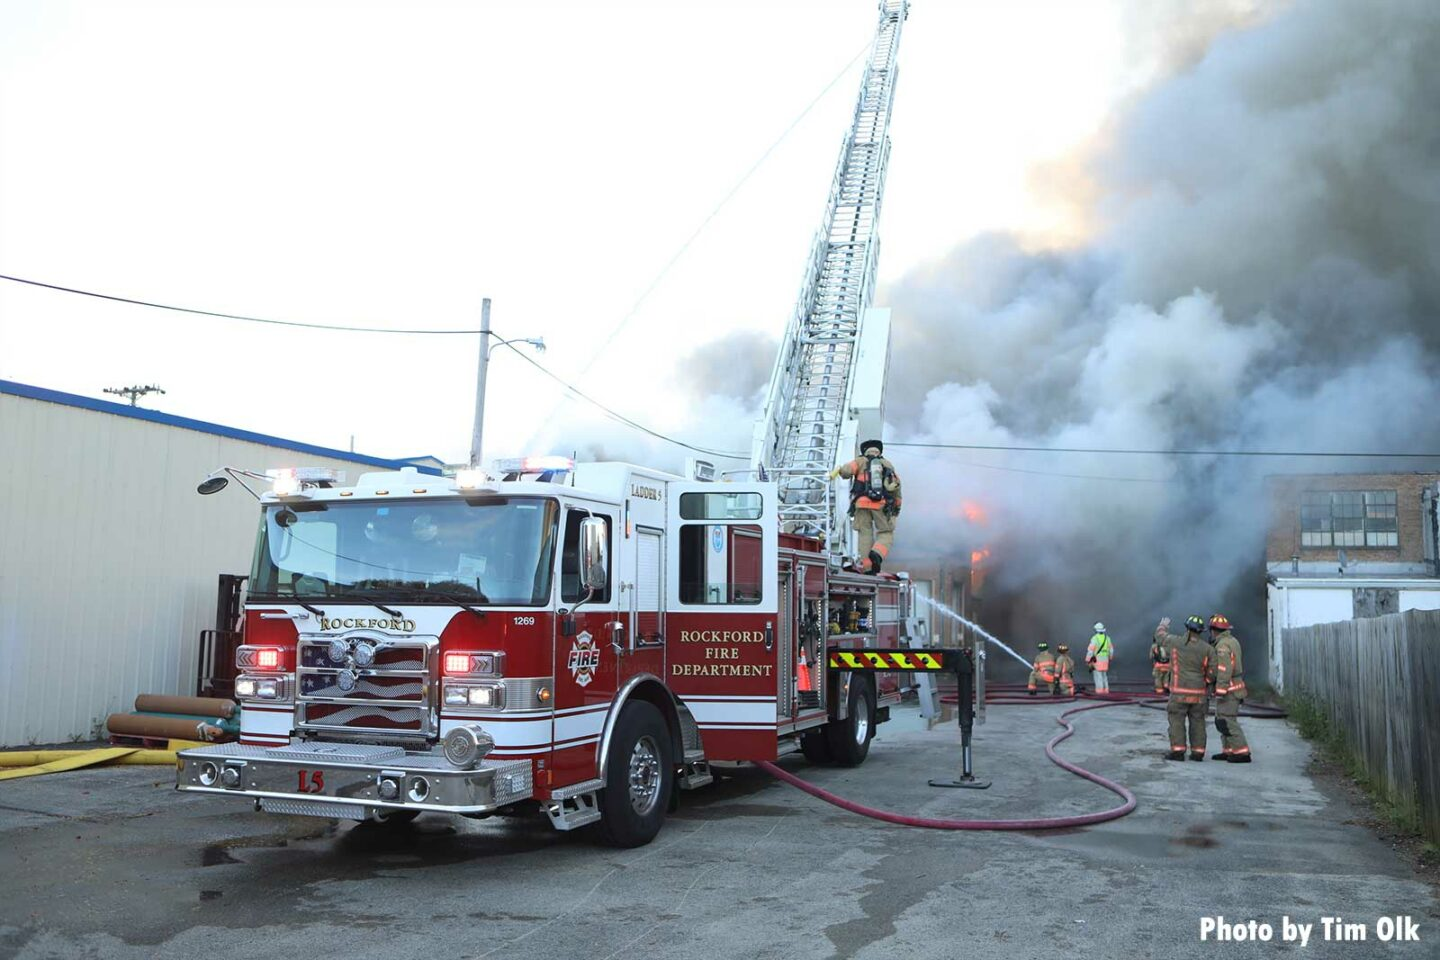 Rockford aerial setup at structure fire